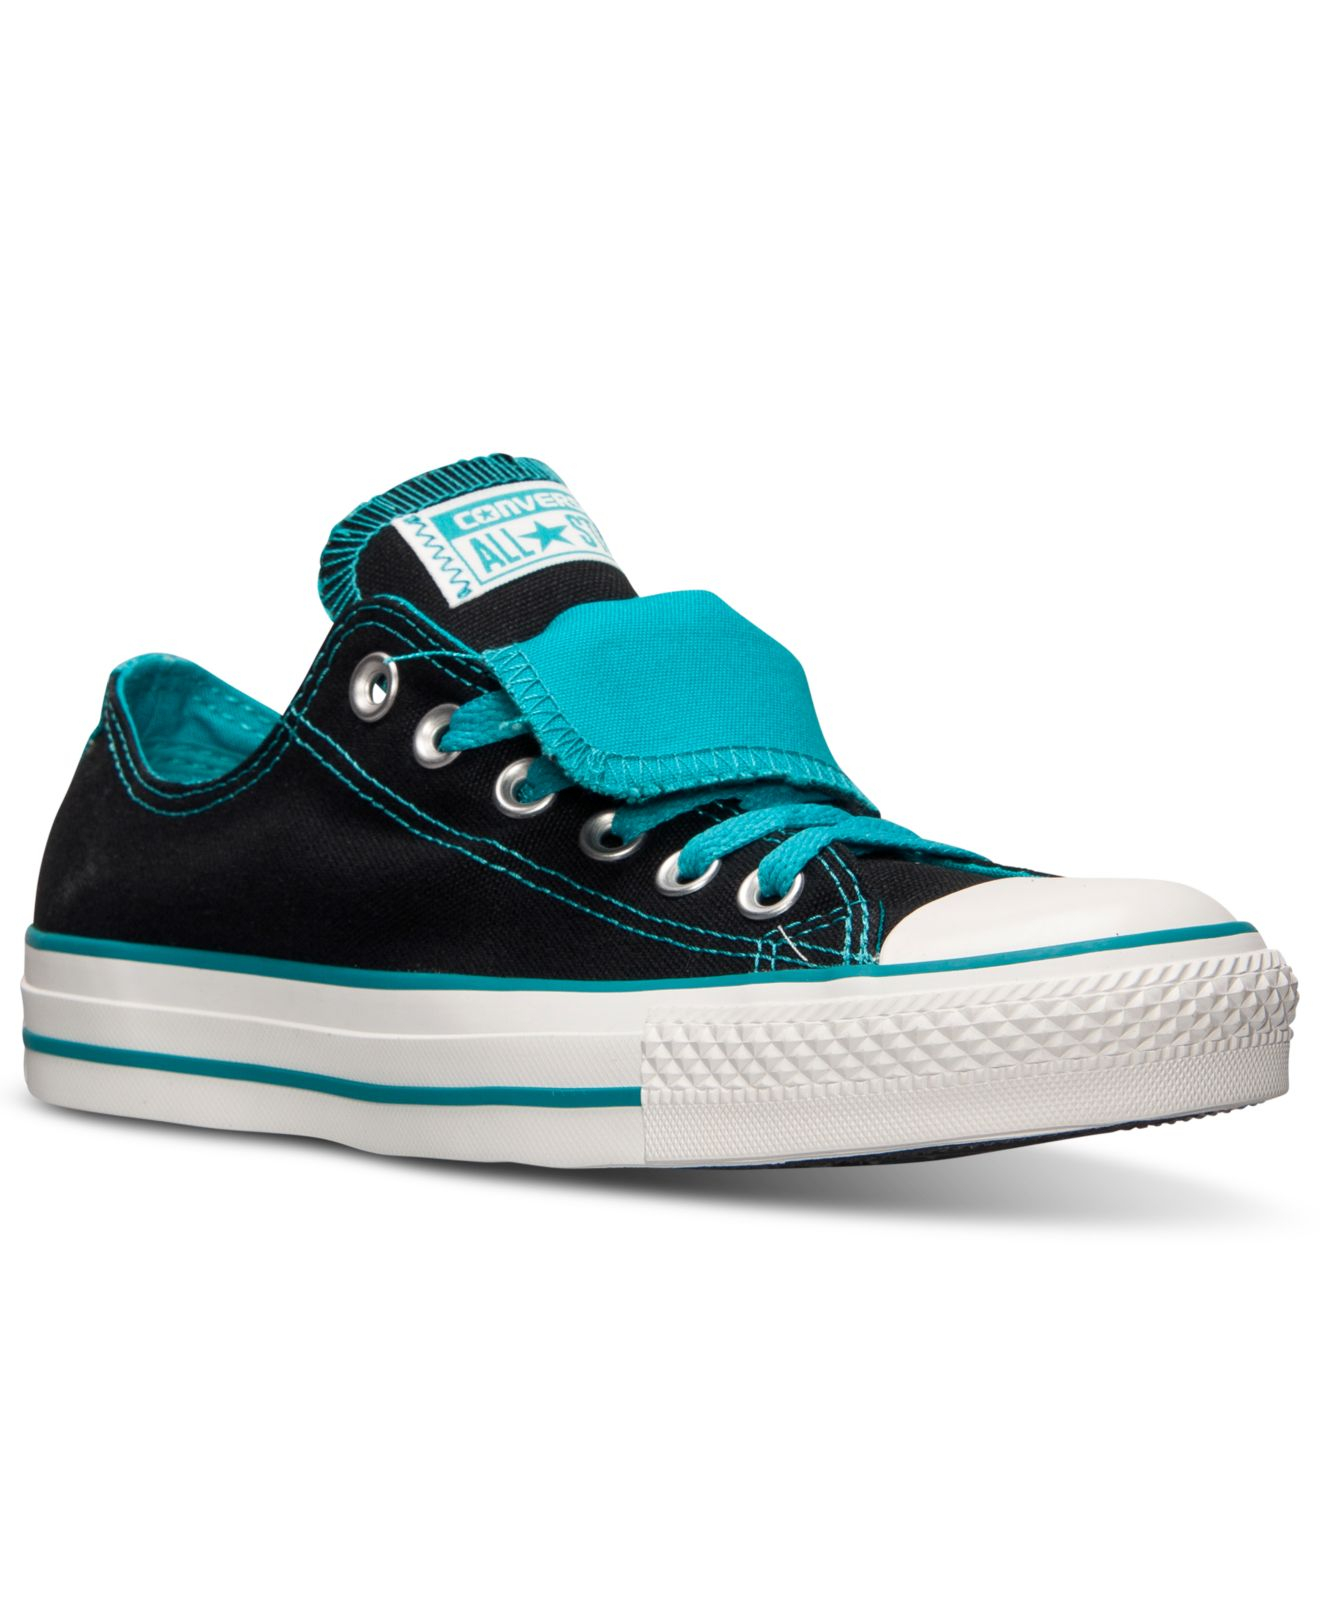 95cd2fa30636 ... where to buy lyst converse womens chuck taylor all star double tongue  casual ad212 43782